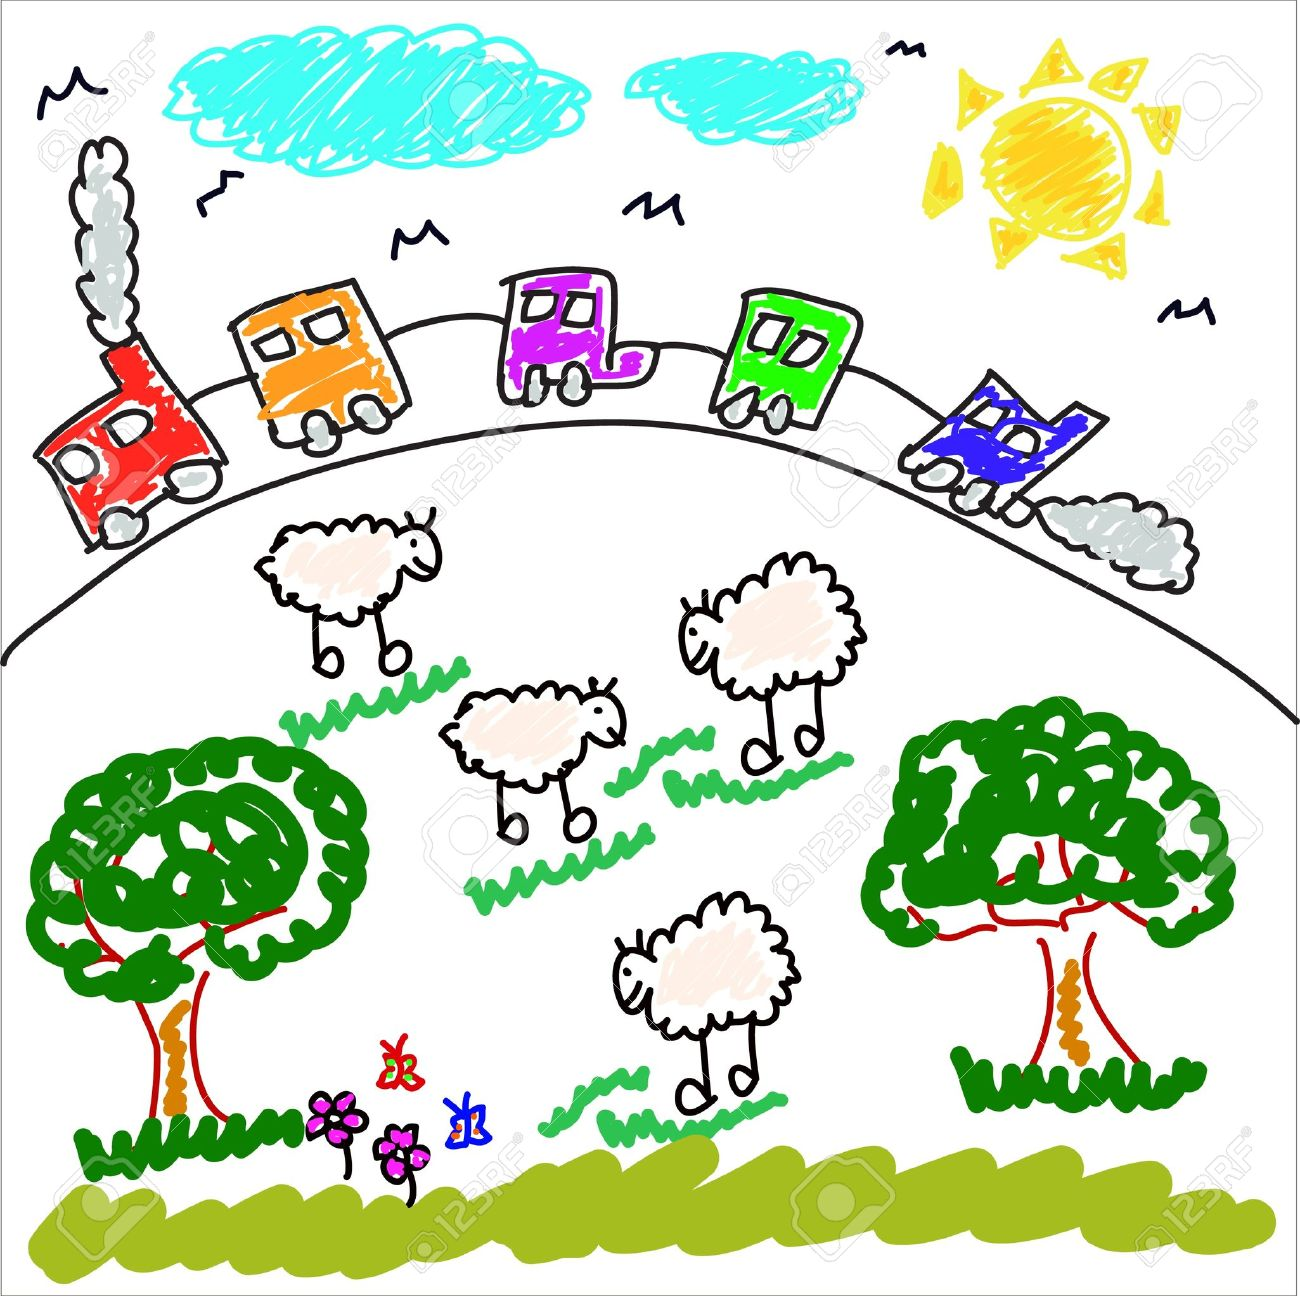 Child Drawing Clipart at GetDrawings.com | Free for personal use ...